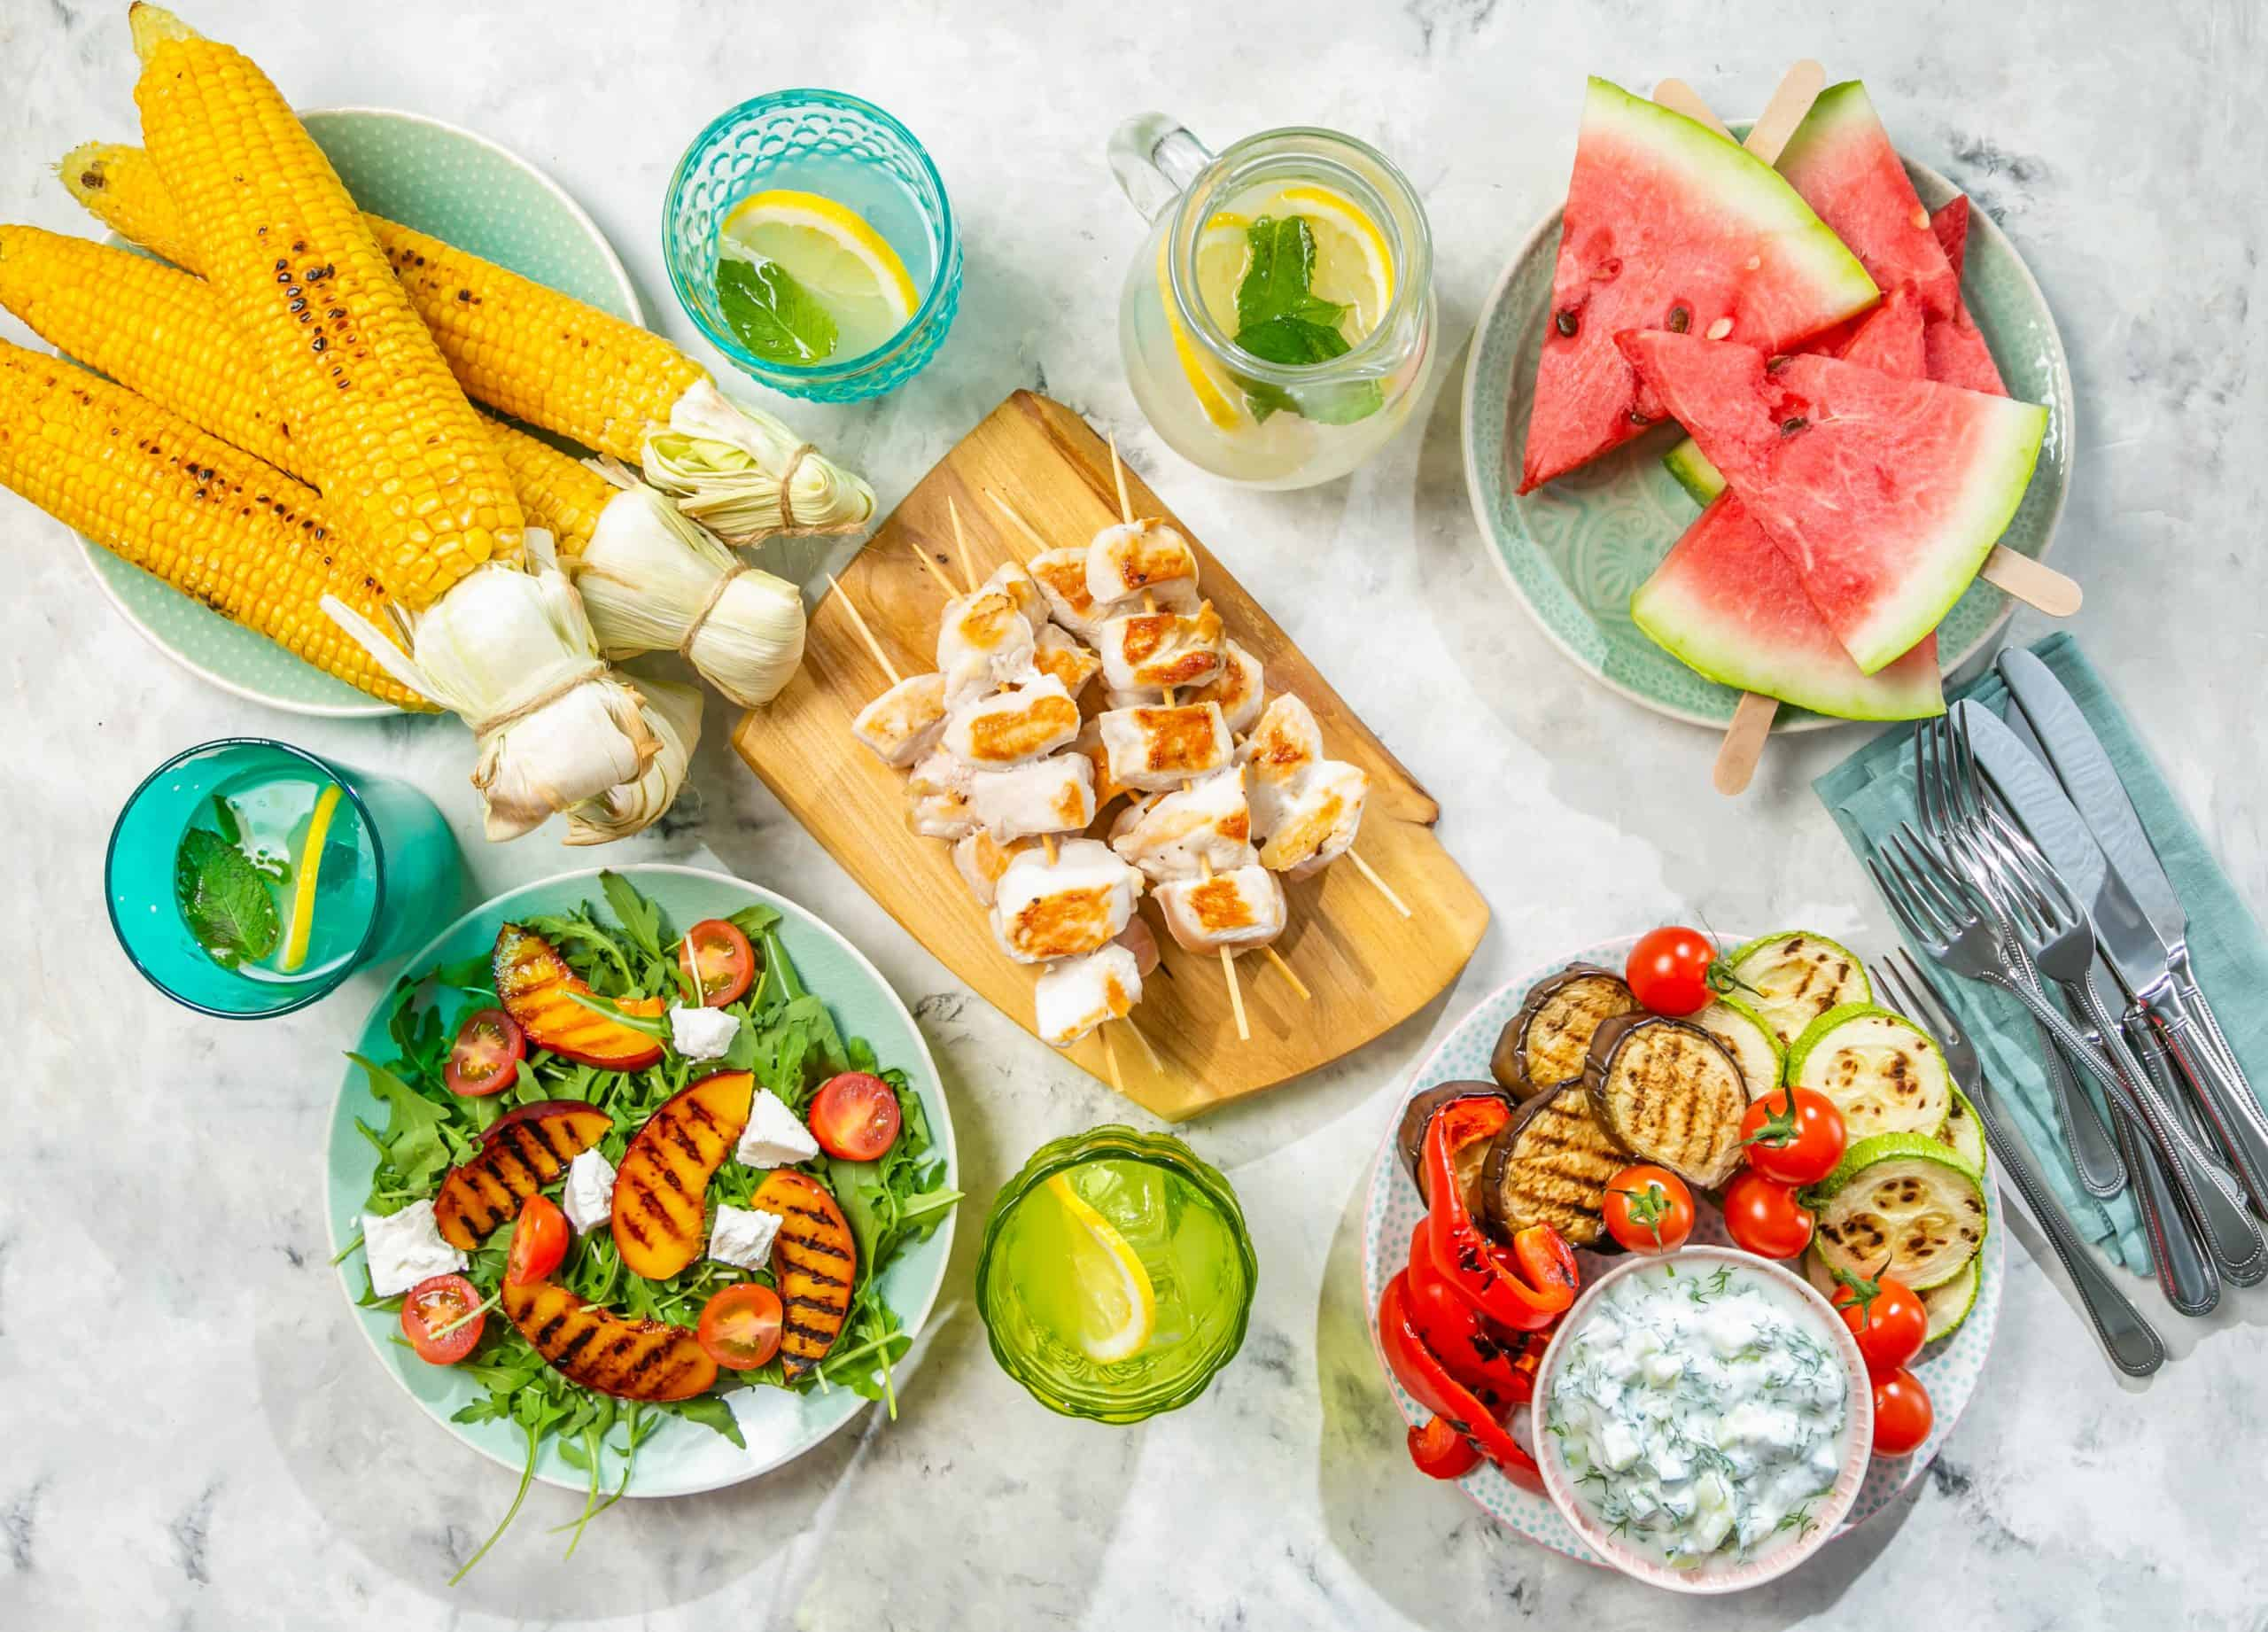 Barbecue leftovers - Summer bbq party table set with grilled chicken, vegetables, corn, salad